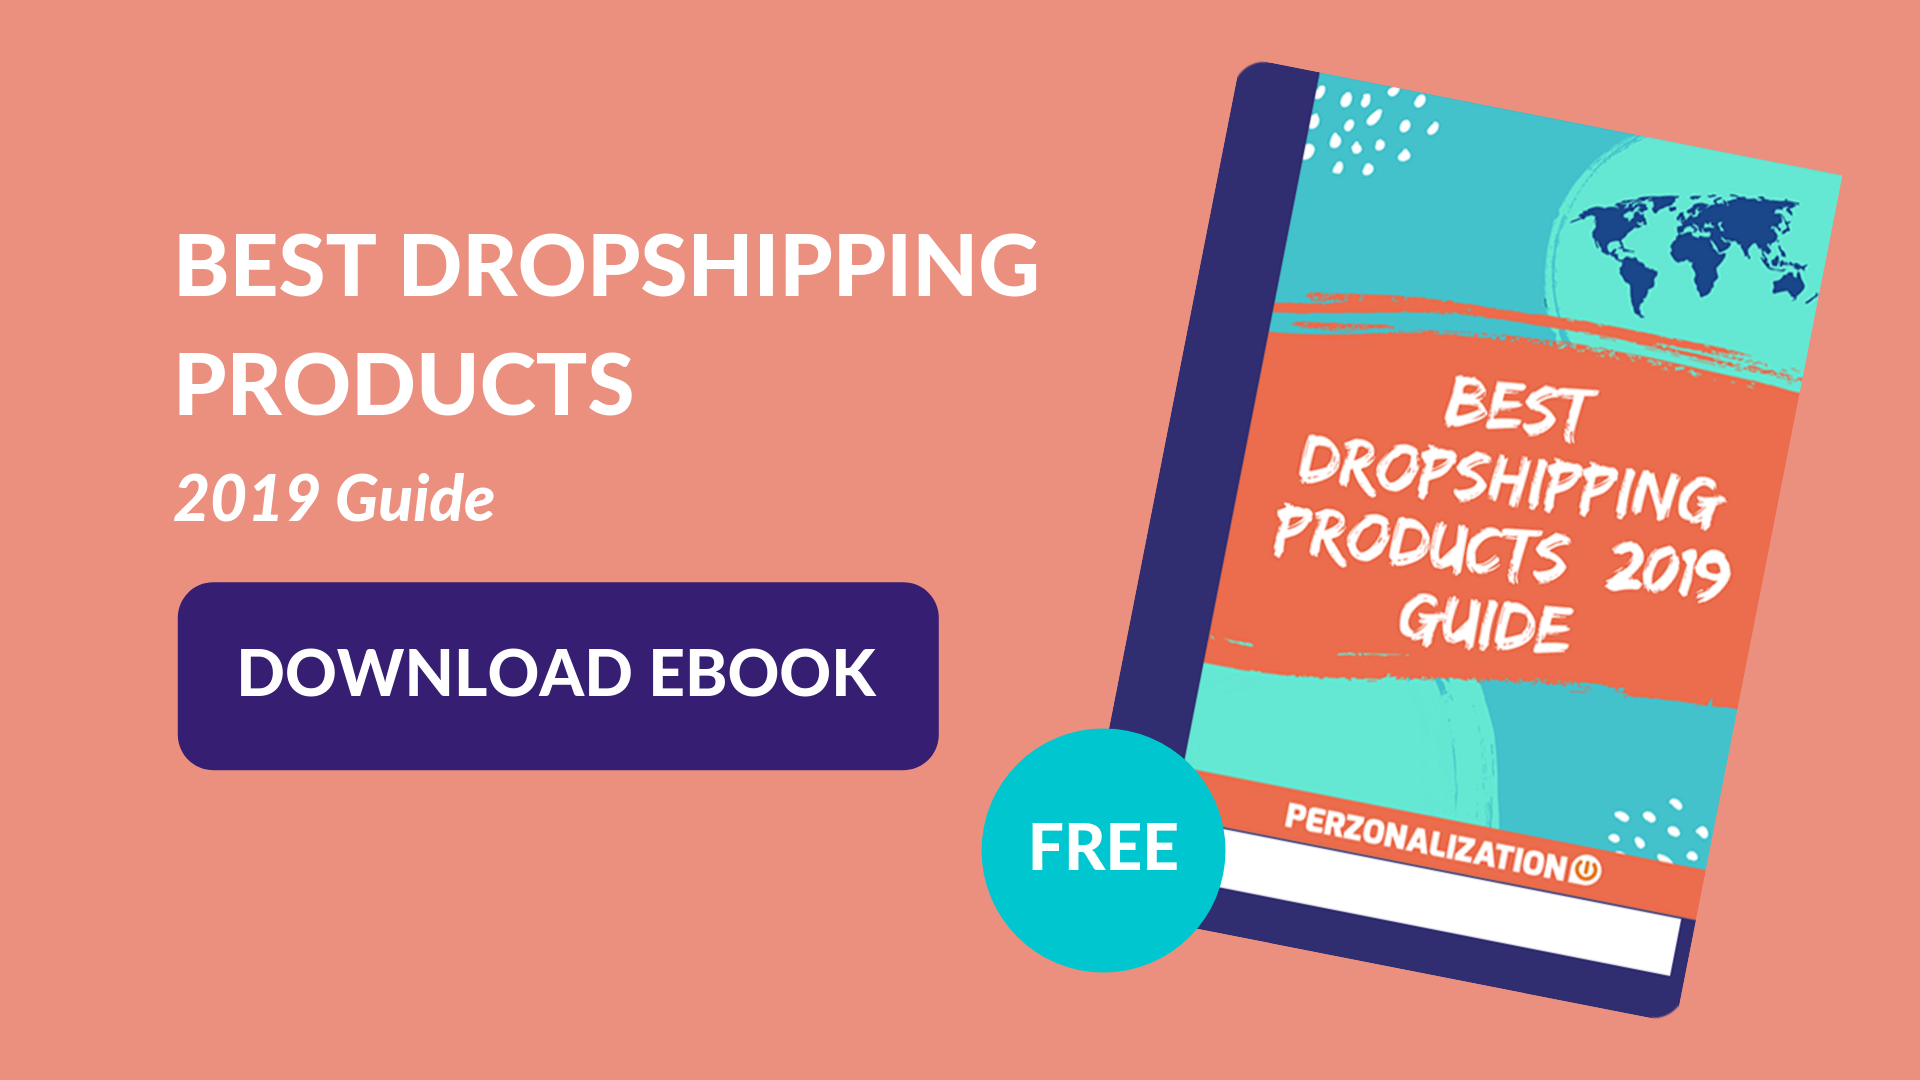 Download free eBook: BEST DROPSHIPPING PRODUCTS